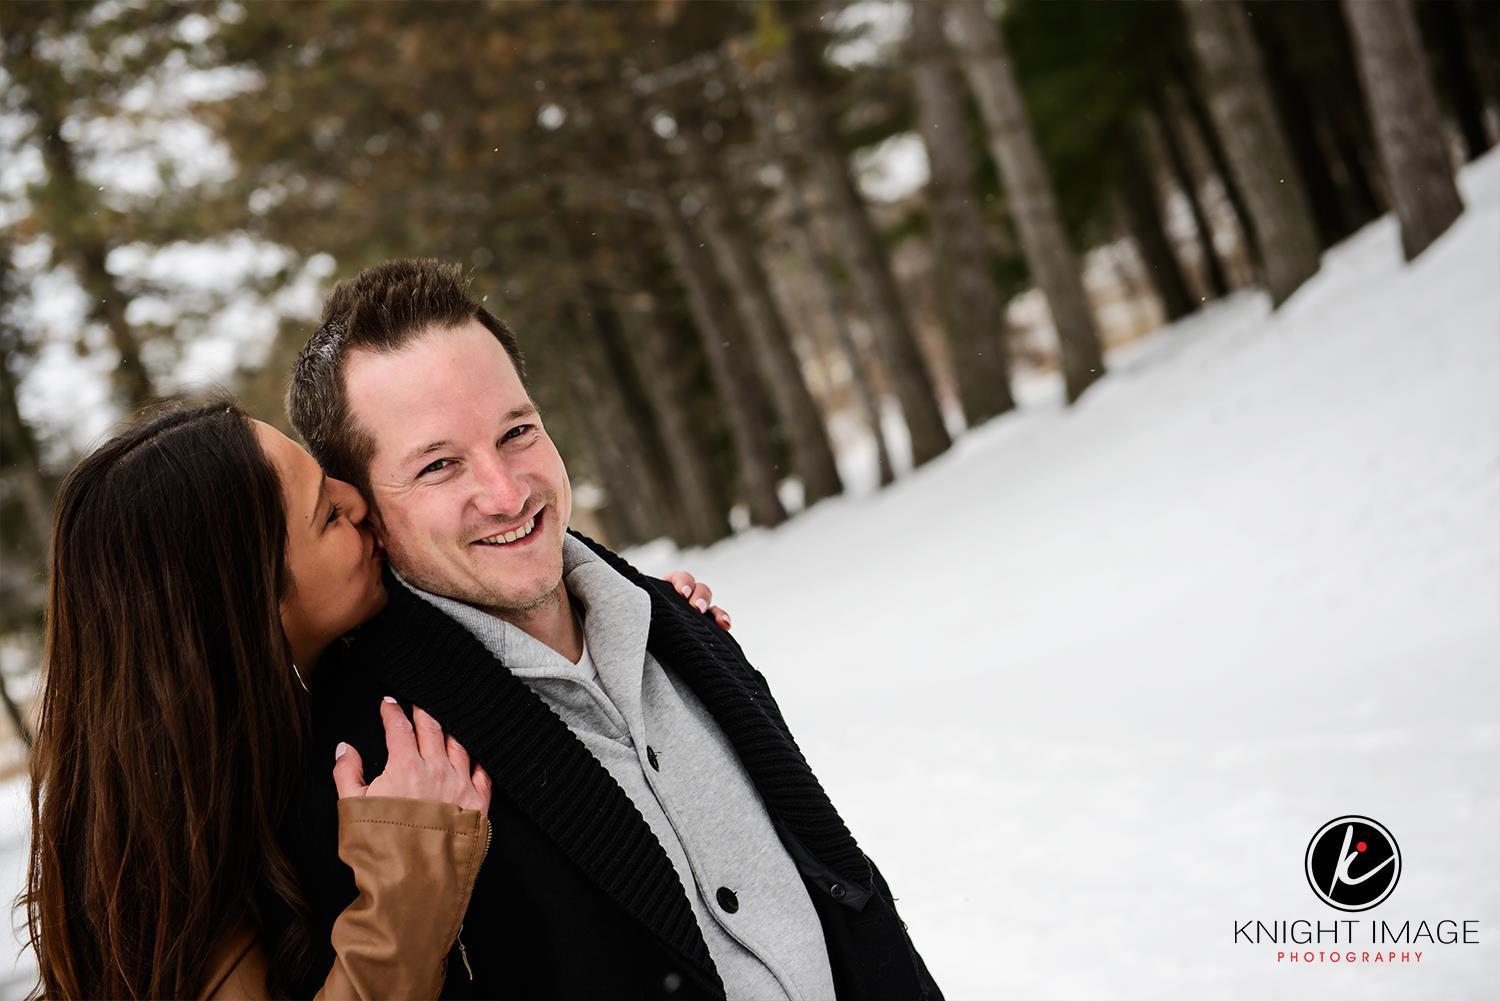 This is a Fairy Lake engagement photograph taken by a wedding photographer in Newmarket